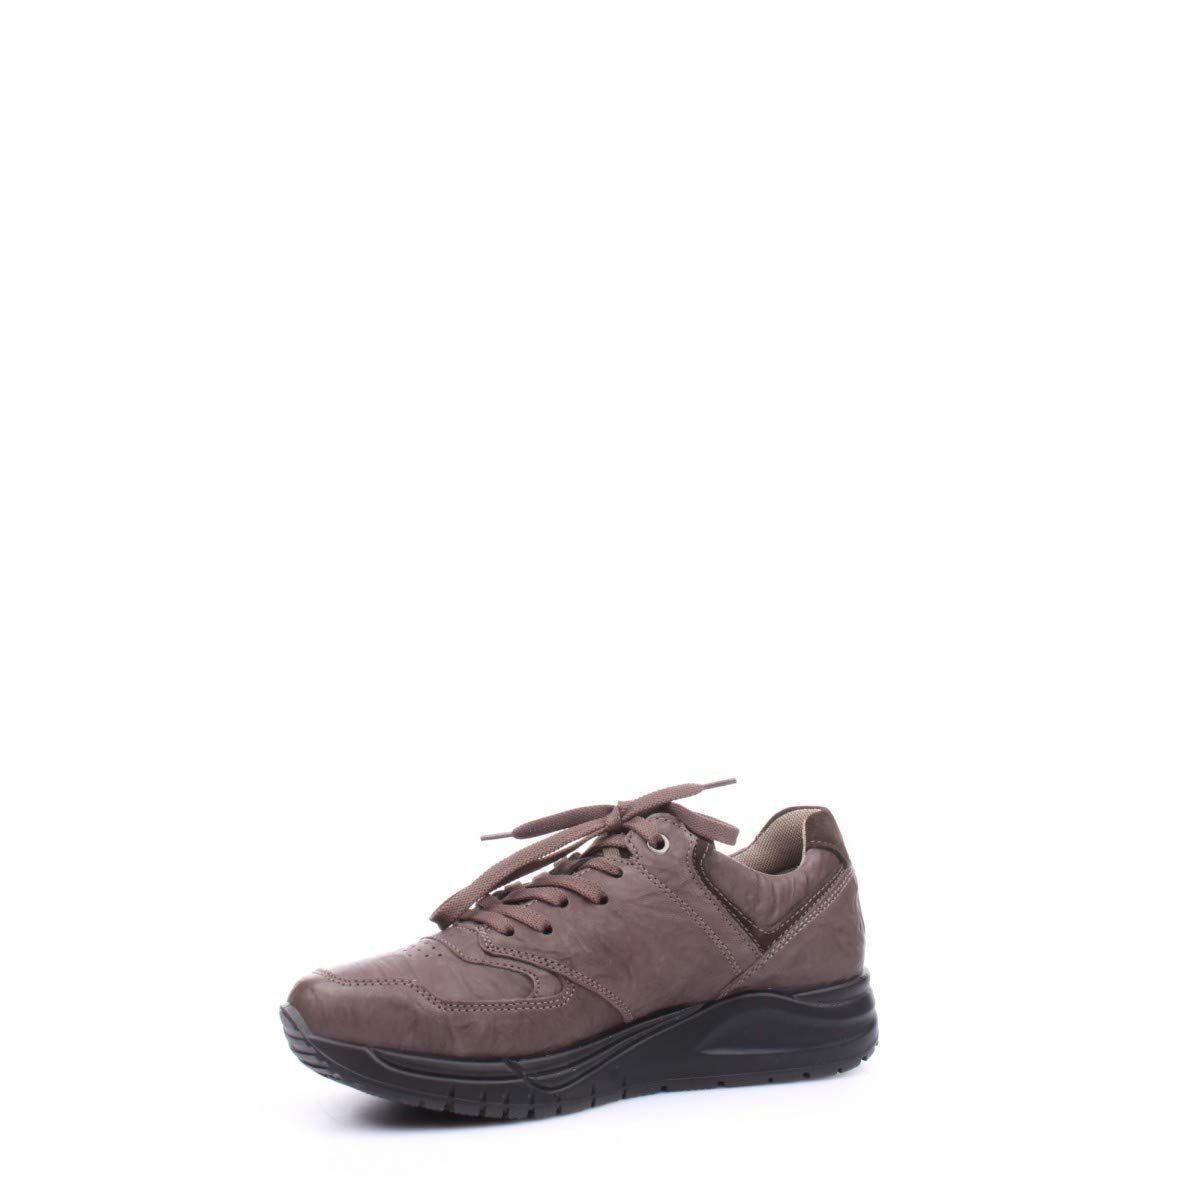 IGI&CO 6727200 Sneaker Taupe 45 45Autunno Inverno: Amazon.it